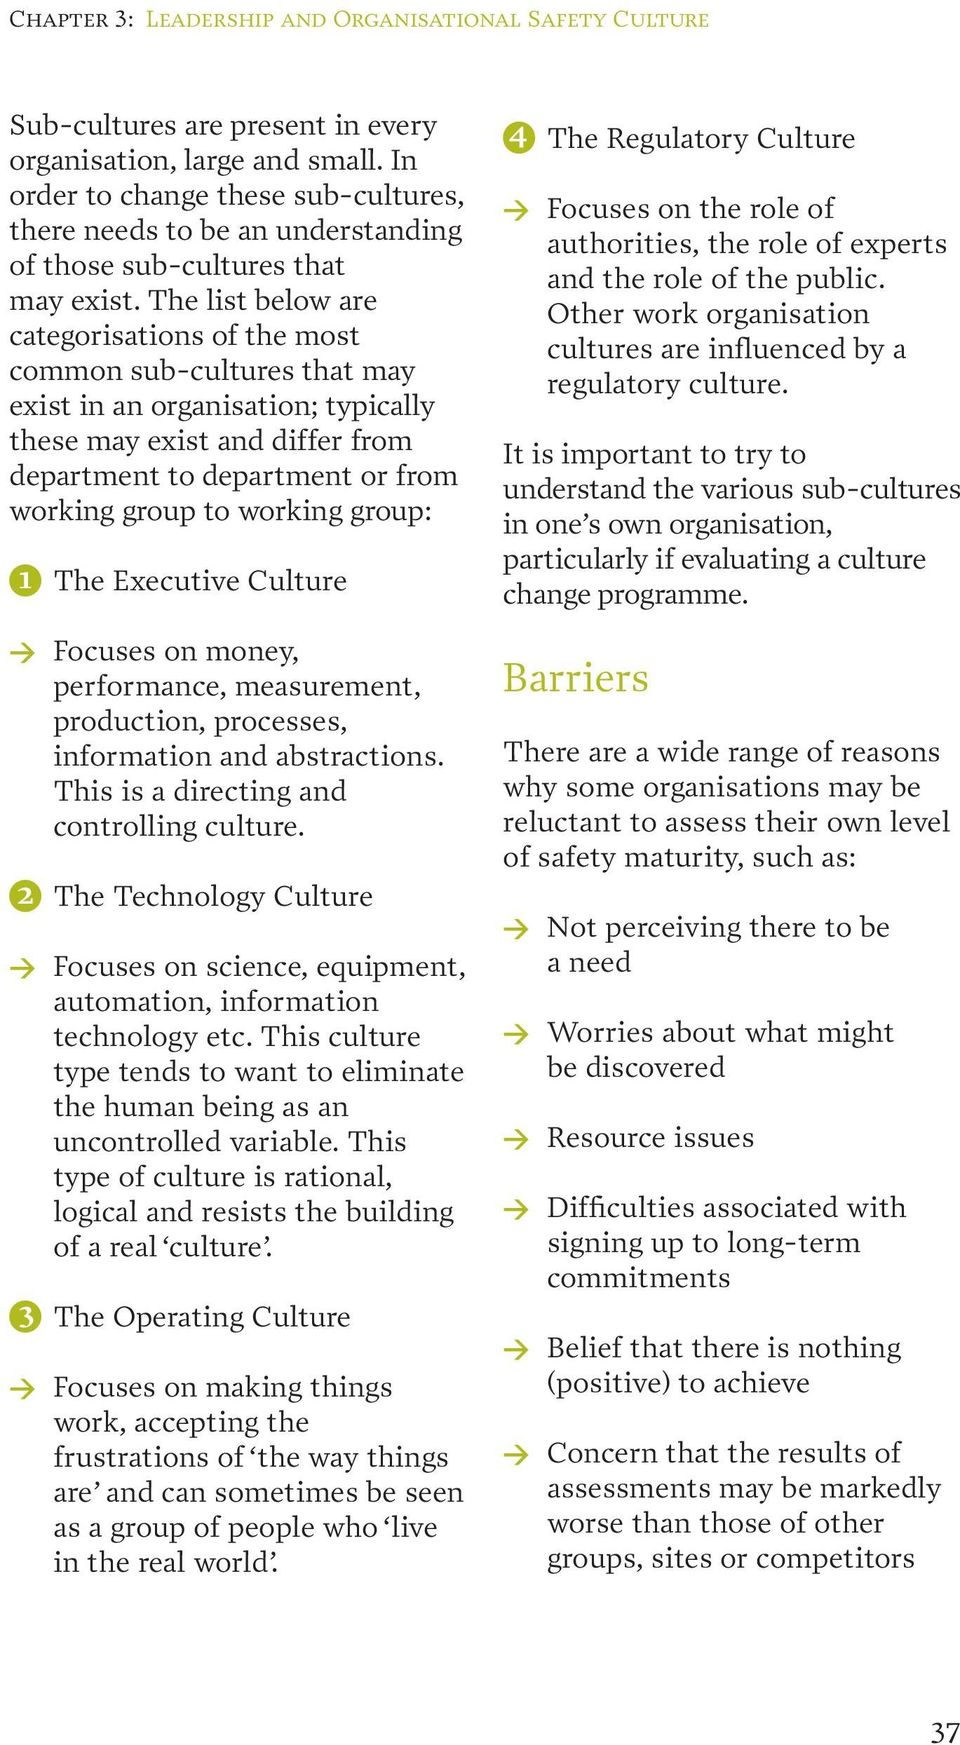 The list below are categorisations of the most common sub-cultures that may exist in an organisation; typically these may exist and differ from department to department or from working group to